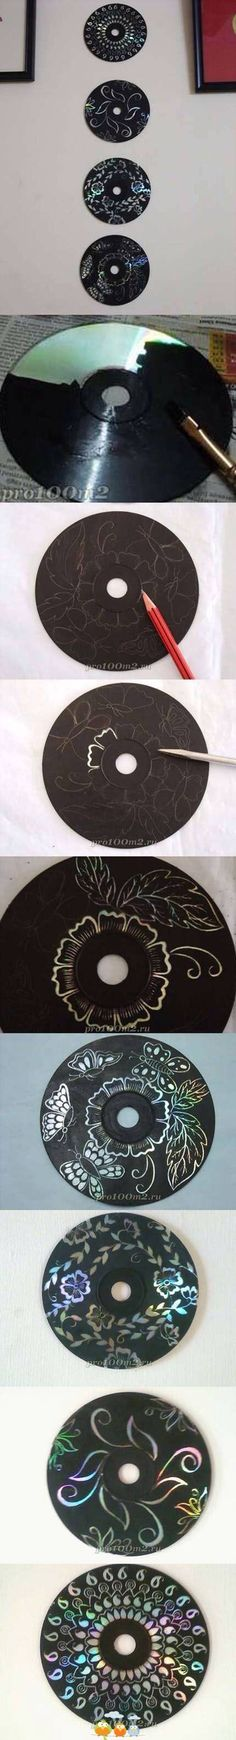 Paint CD's black, draw a design then remove the poll owing your drawing. Boom! Awesome wall decor